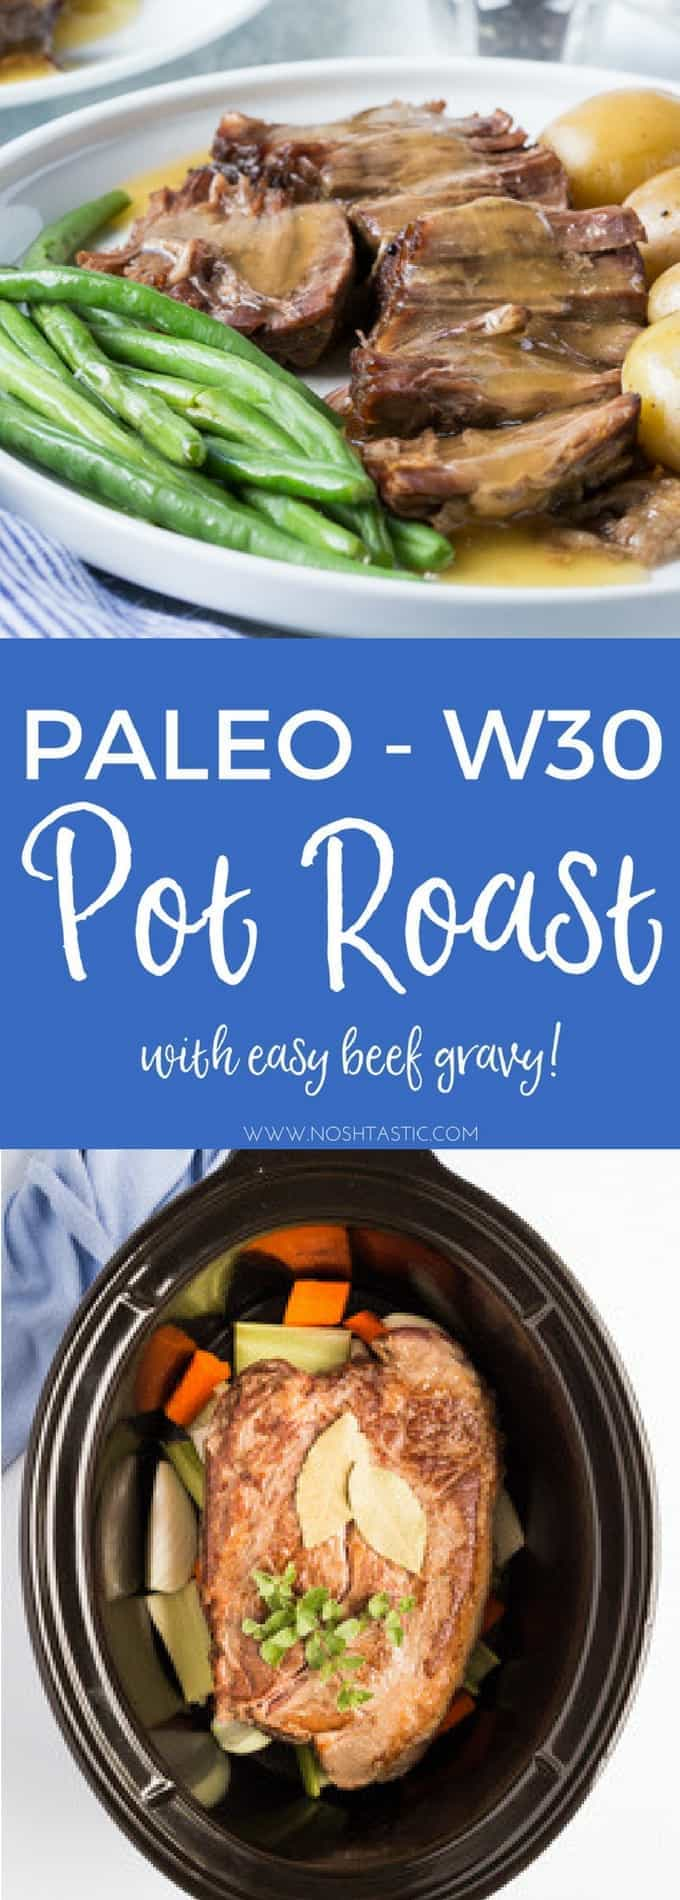 You can make my Paleo Pot Roast in the Crock Pot, Slow Cooker, oven or Instant Pot, it's so easy to make and whole30 too! #paleo #whole30 #slowcooker #crockpot #dutchoven #paleopotroast #noshtastic